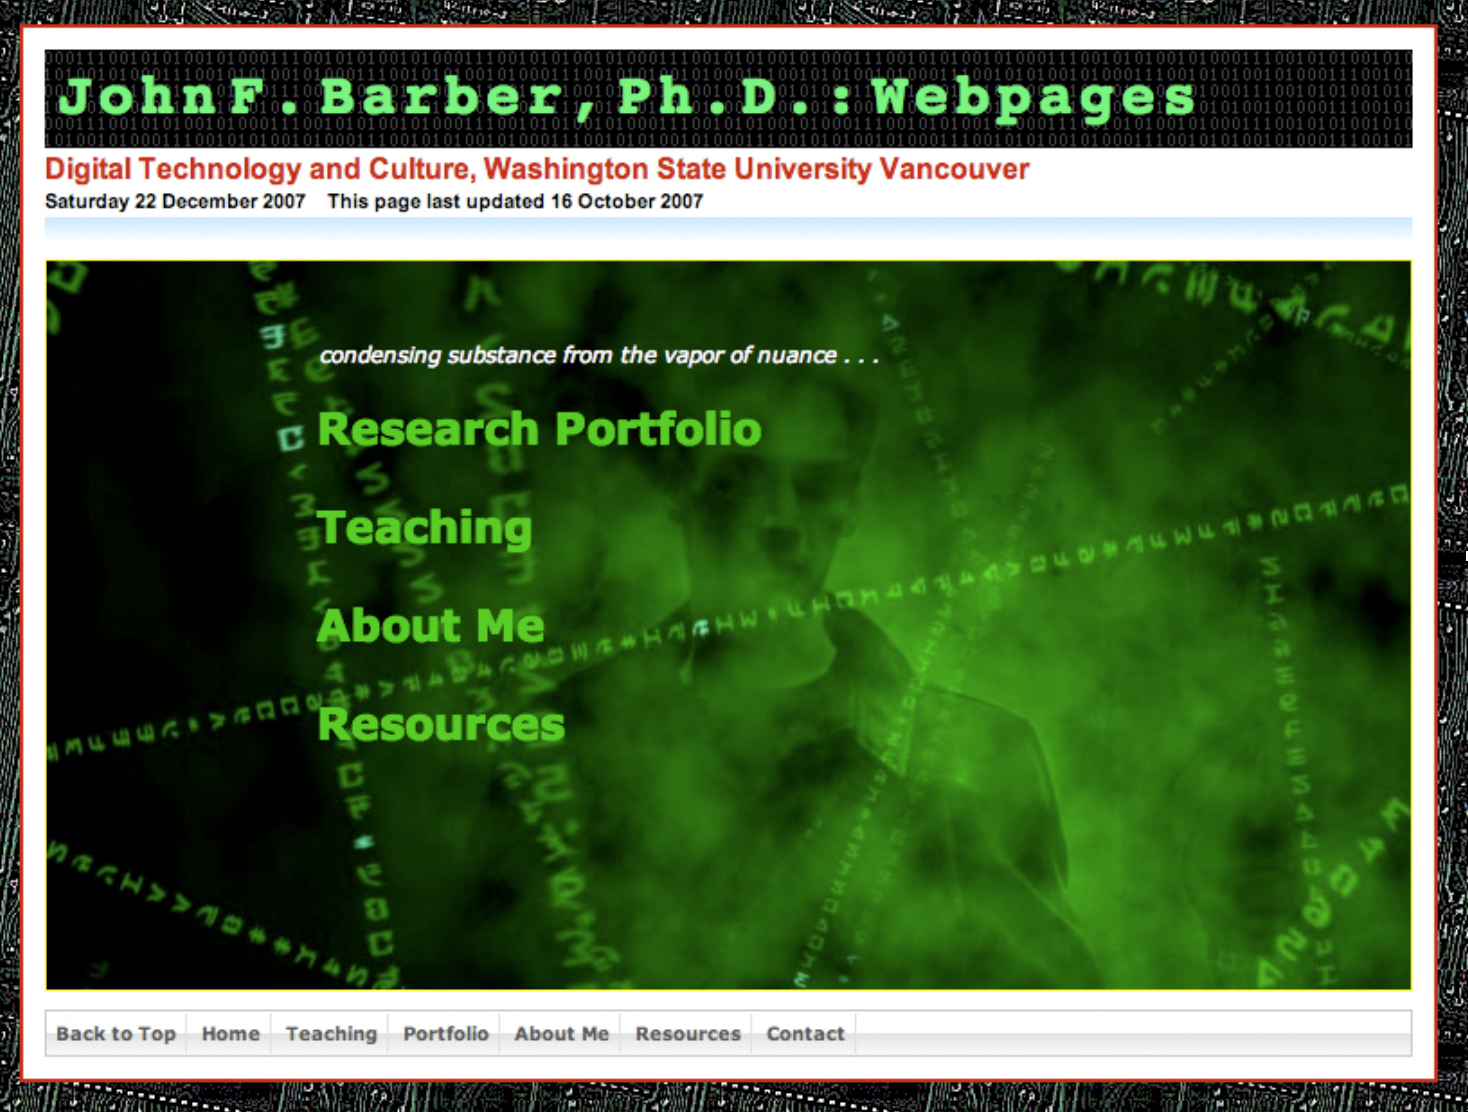 John f barber news the new website is fully responsive html5 based on a template by html5 up and released under a creative commons attribution license many aspects of the fandeluxe Image collections